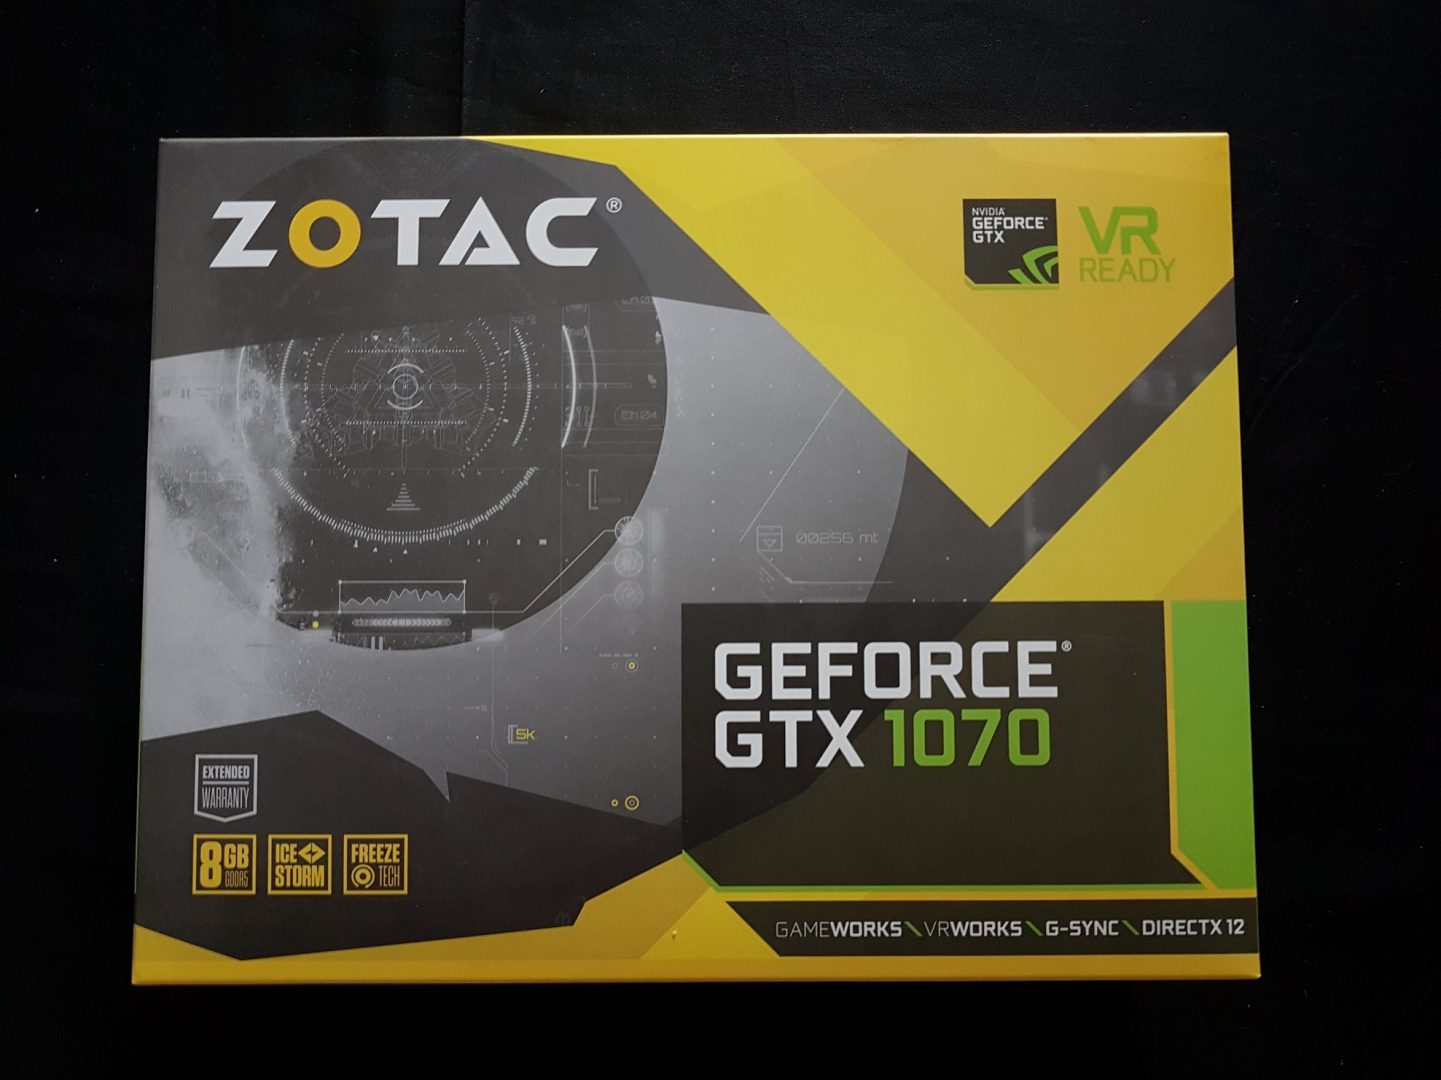 Zotac Geforce GTX 1070 Mini Review - EnosTech com